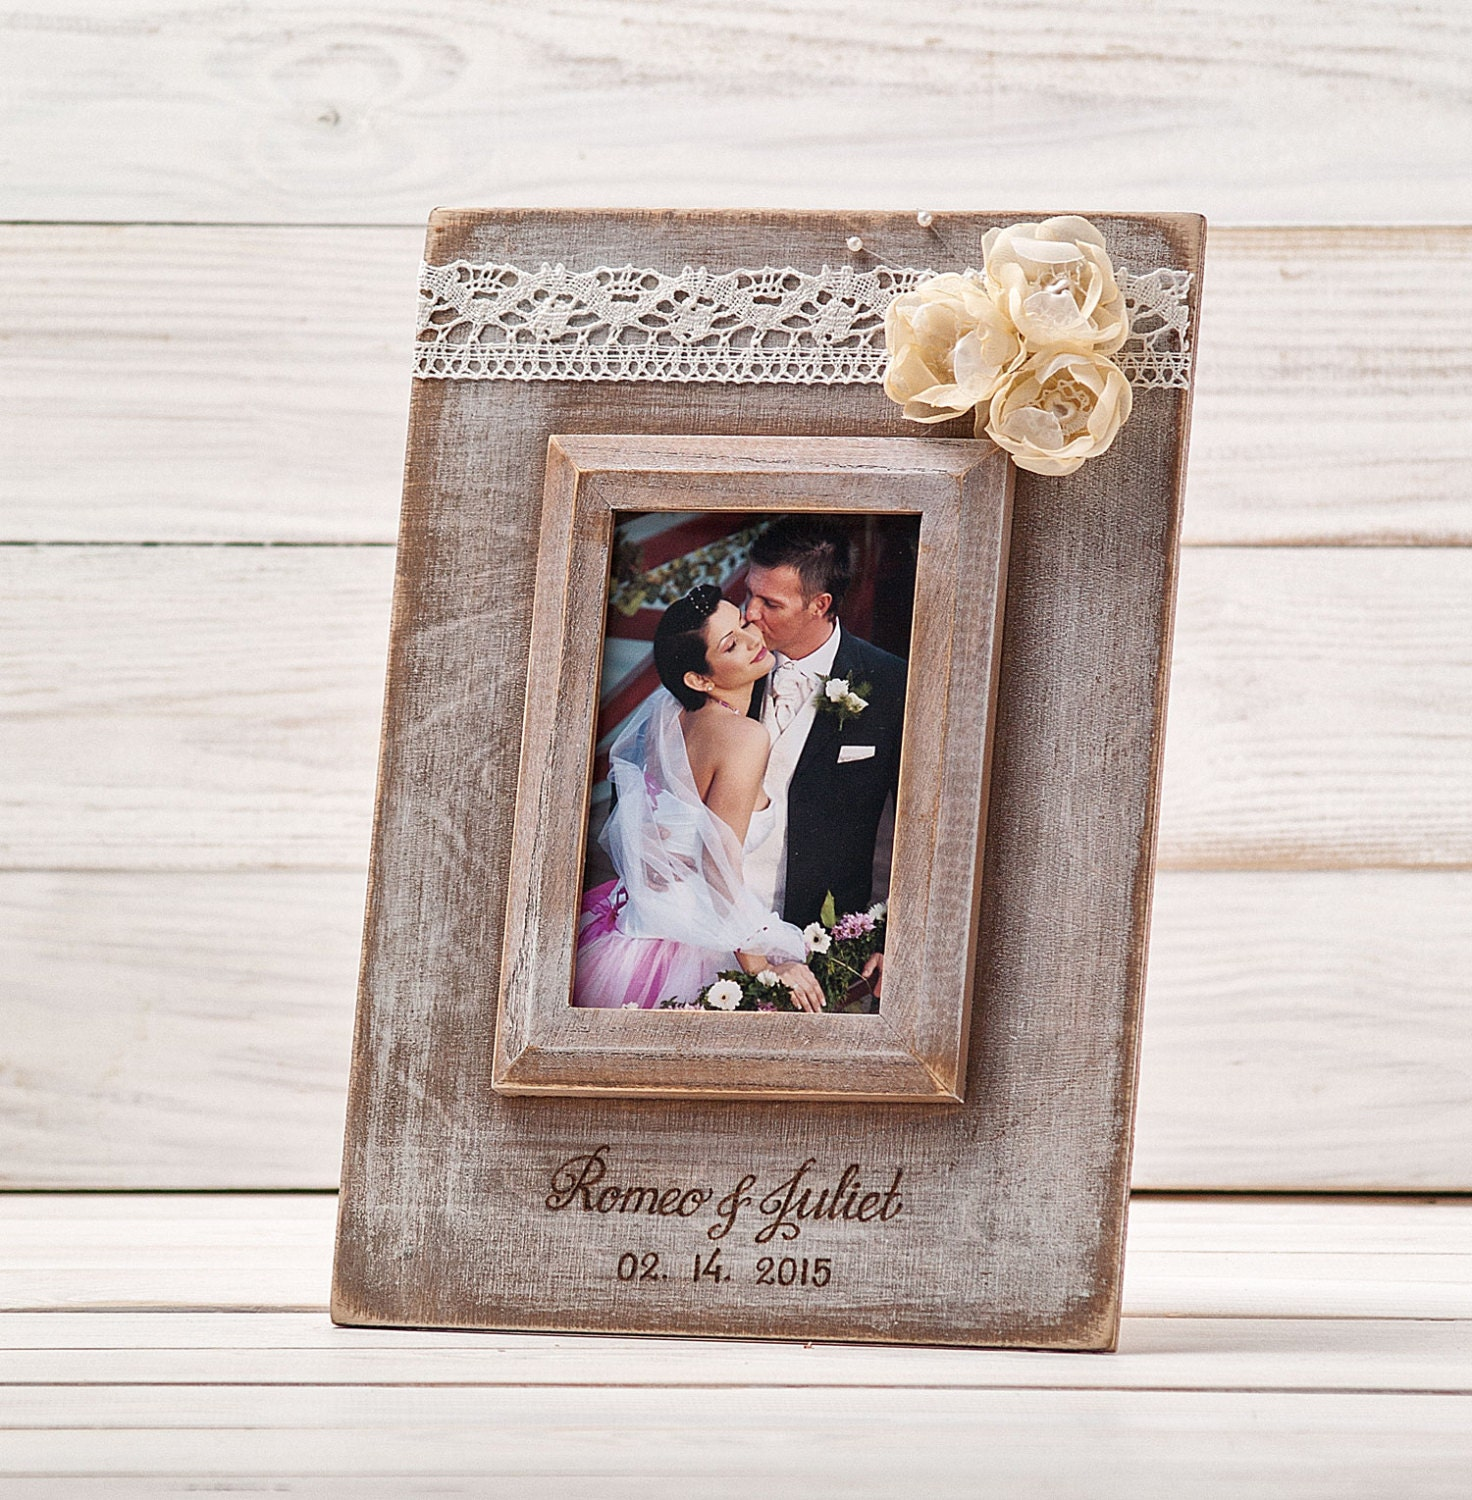 Wedding Frame: Personalized Wedding Frame Rustic Wedding Picture Photo Frame